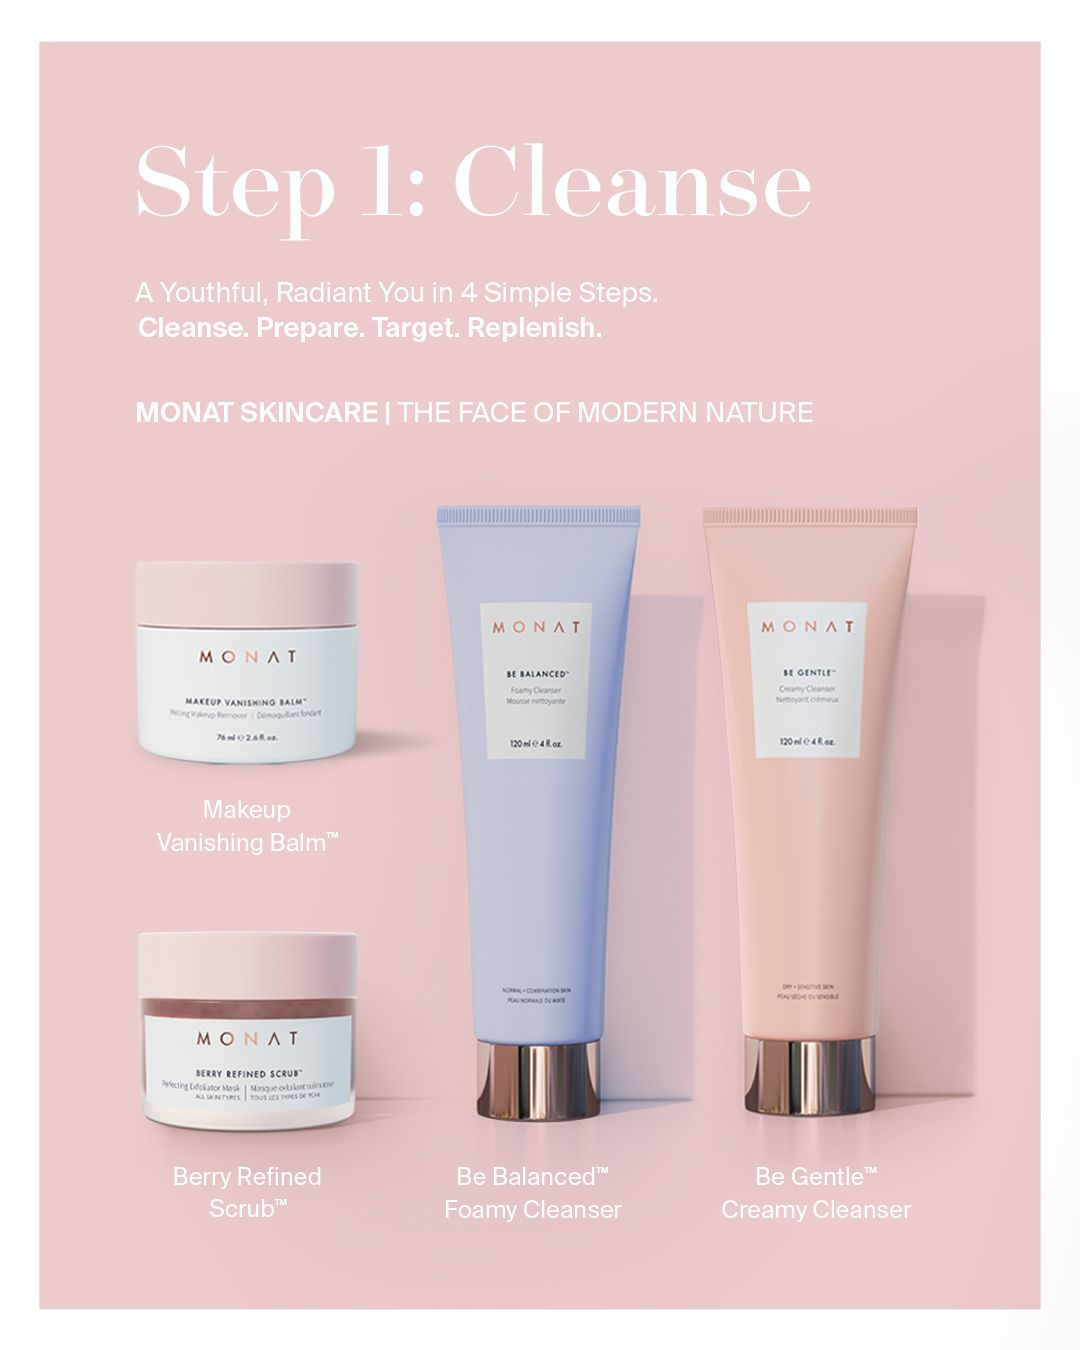 Monat Skincare Products In 2020 Skin Care Monat Monat Hair